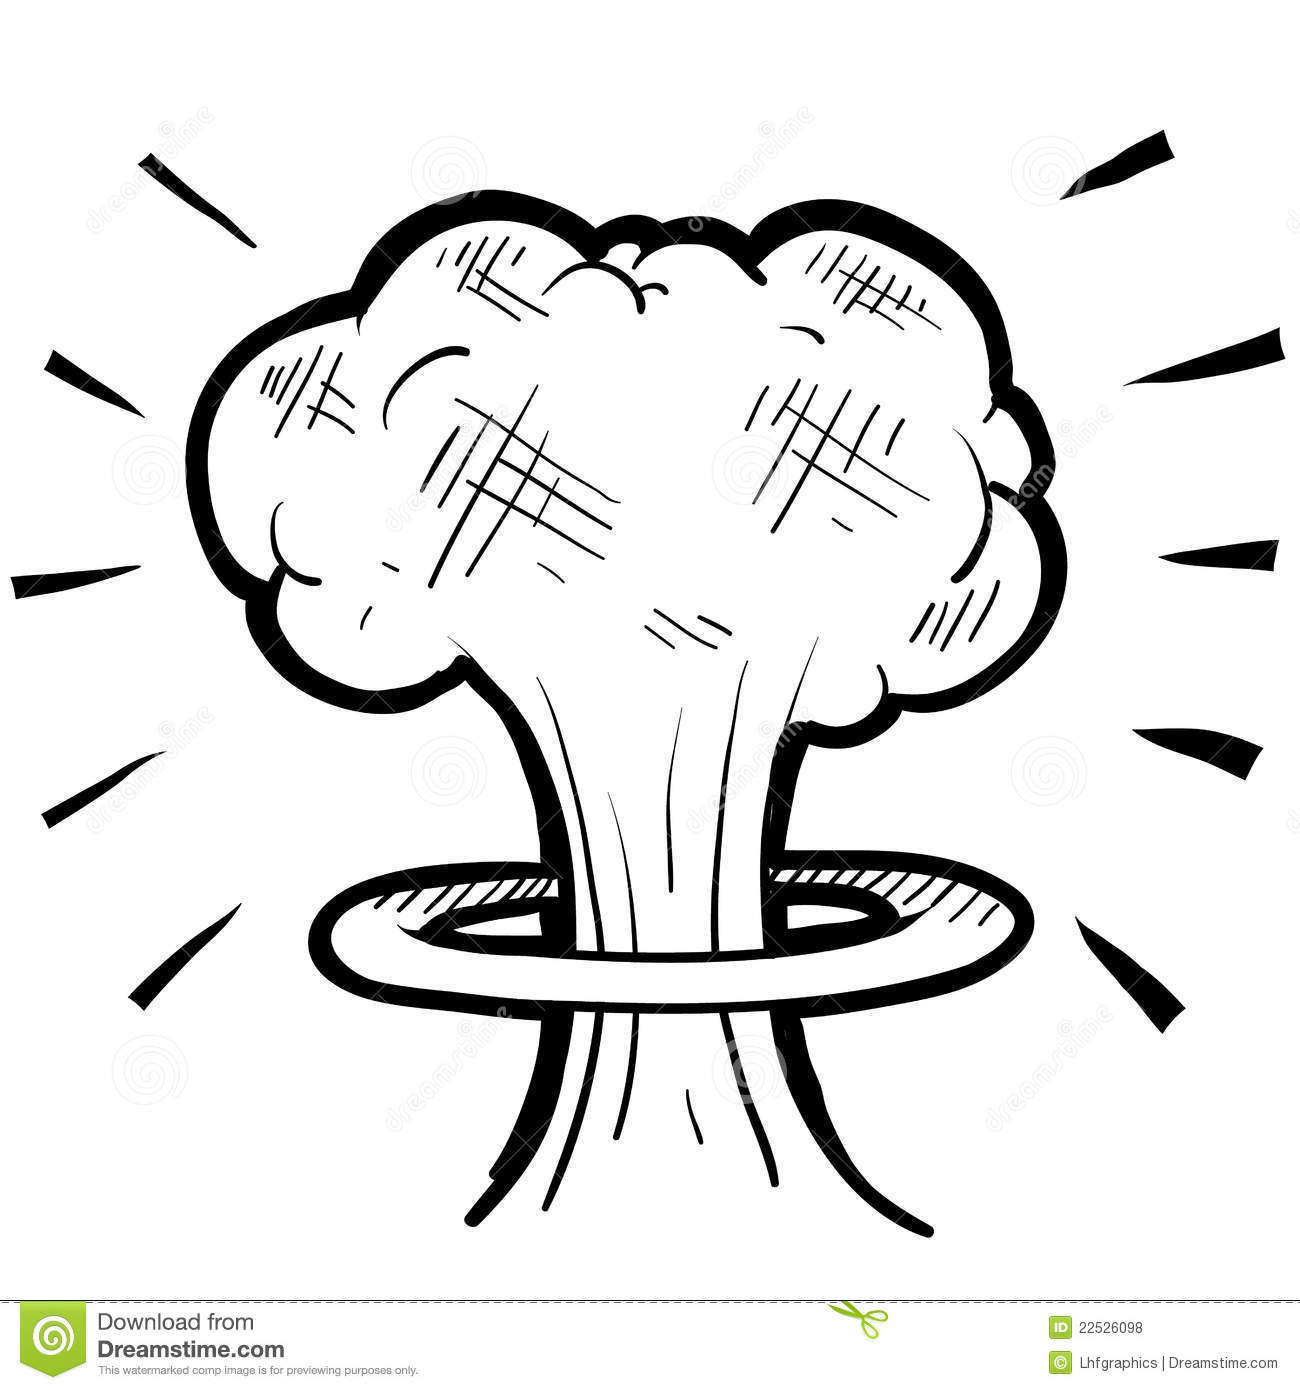 Nuclear Mushroom Cloud Sketch Stock Vector